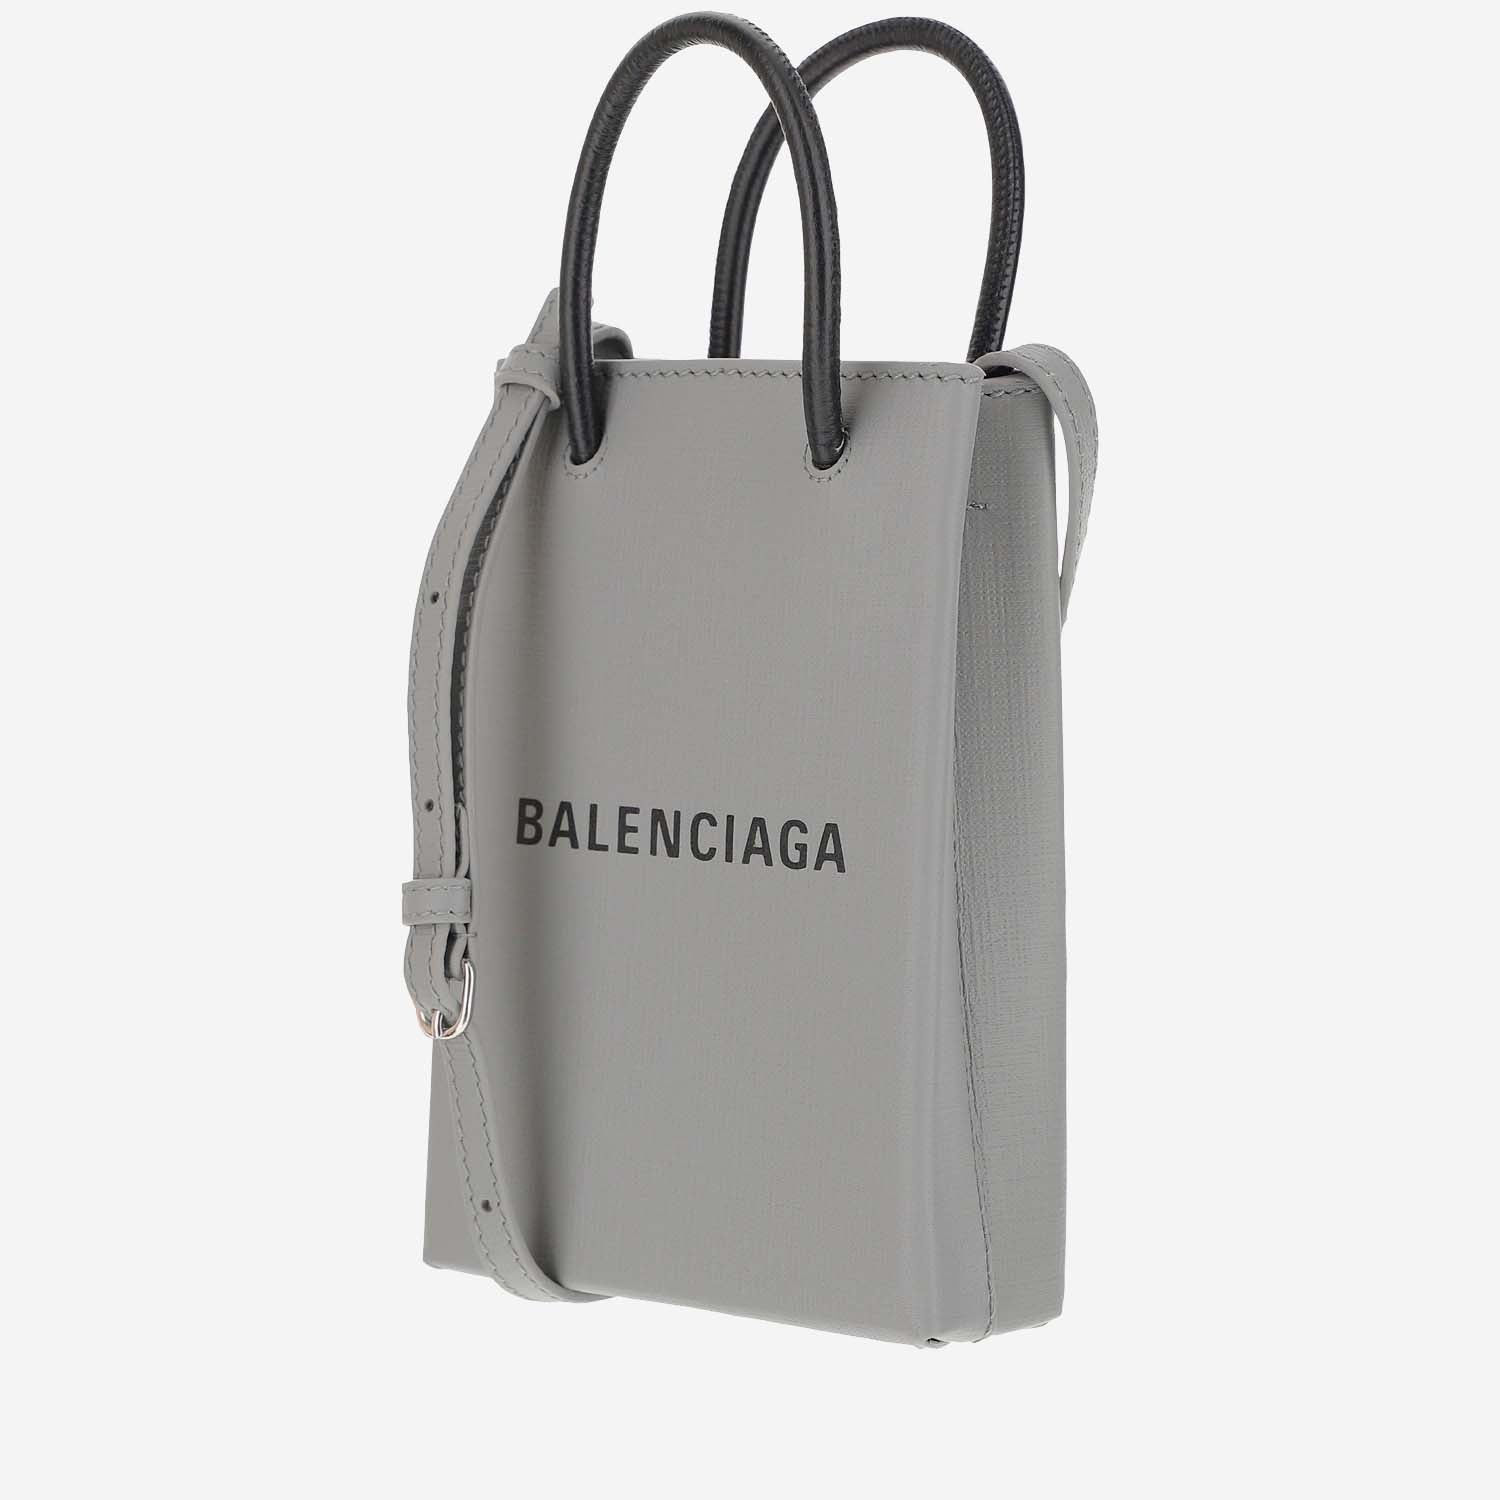 De Verdad Bungalow Por qué no  BALENCIAGA PHONE HOLDER SHOPPING BAG Spring Summer 2021 | binisilvia.com